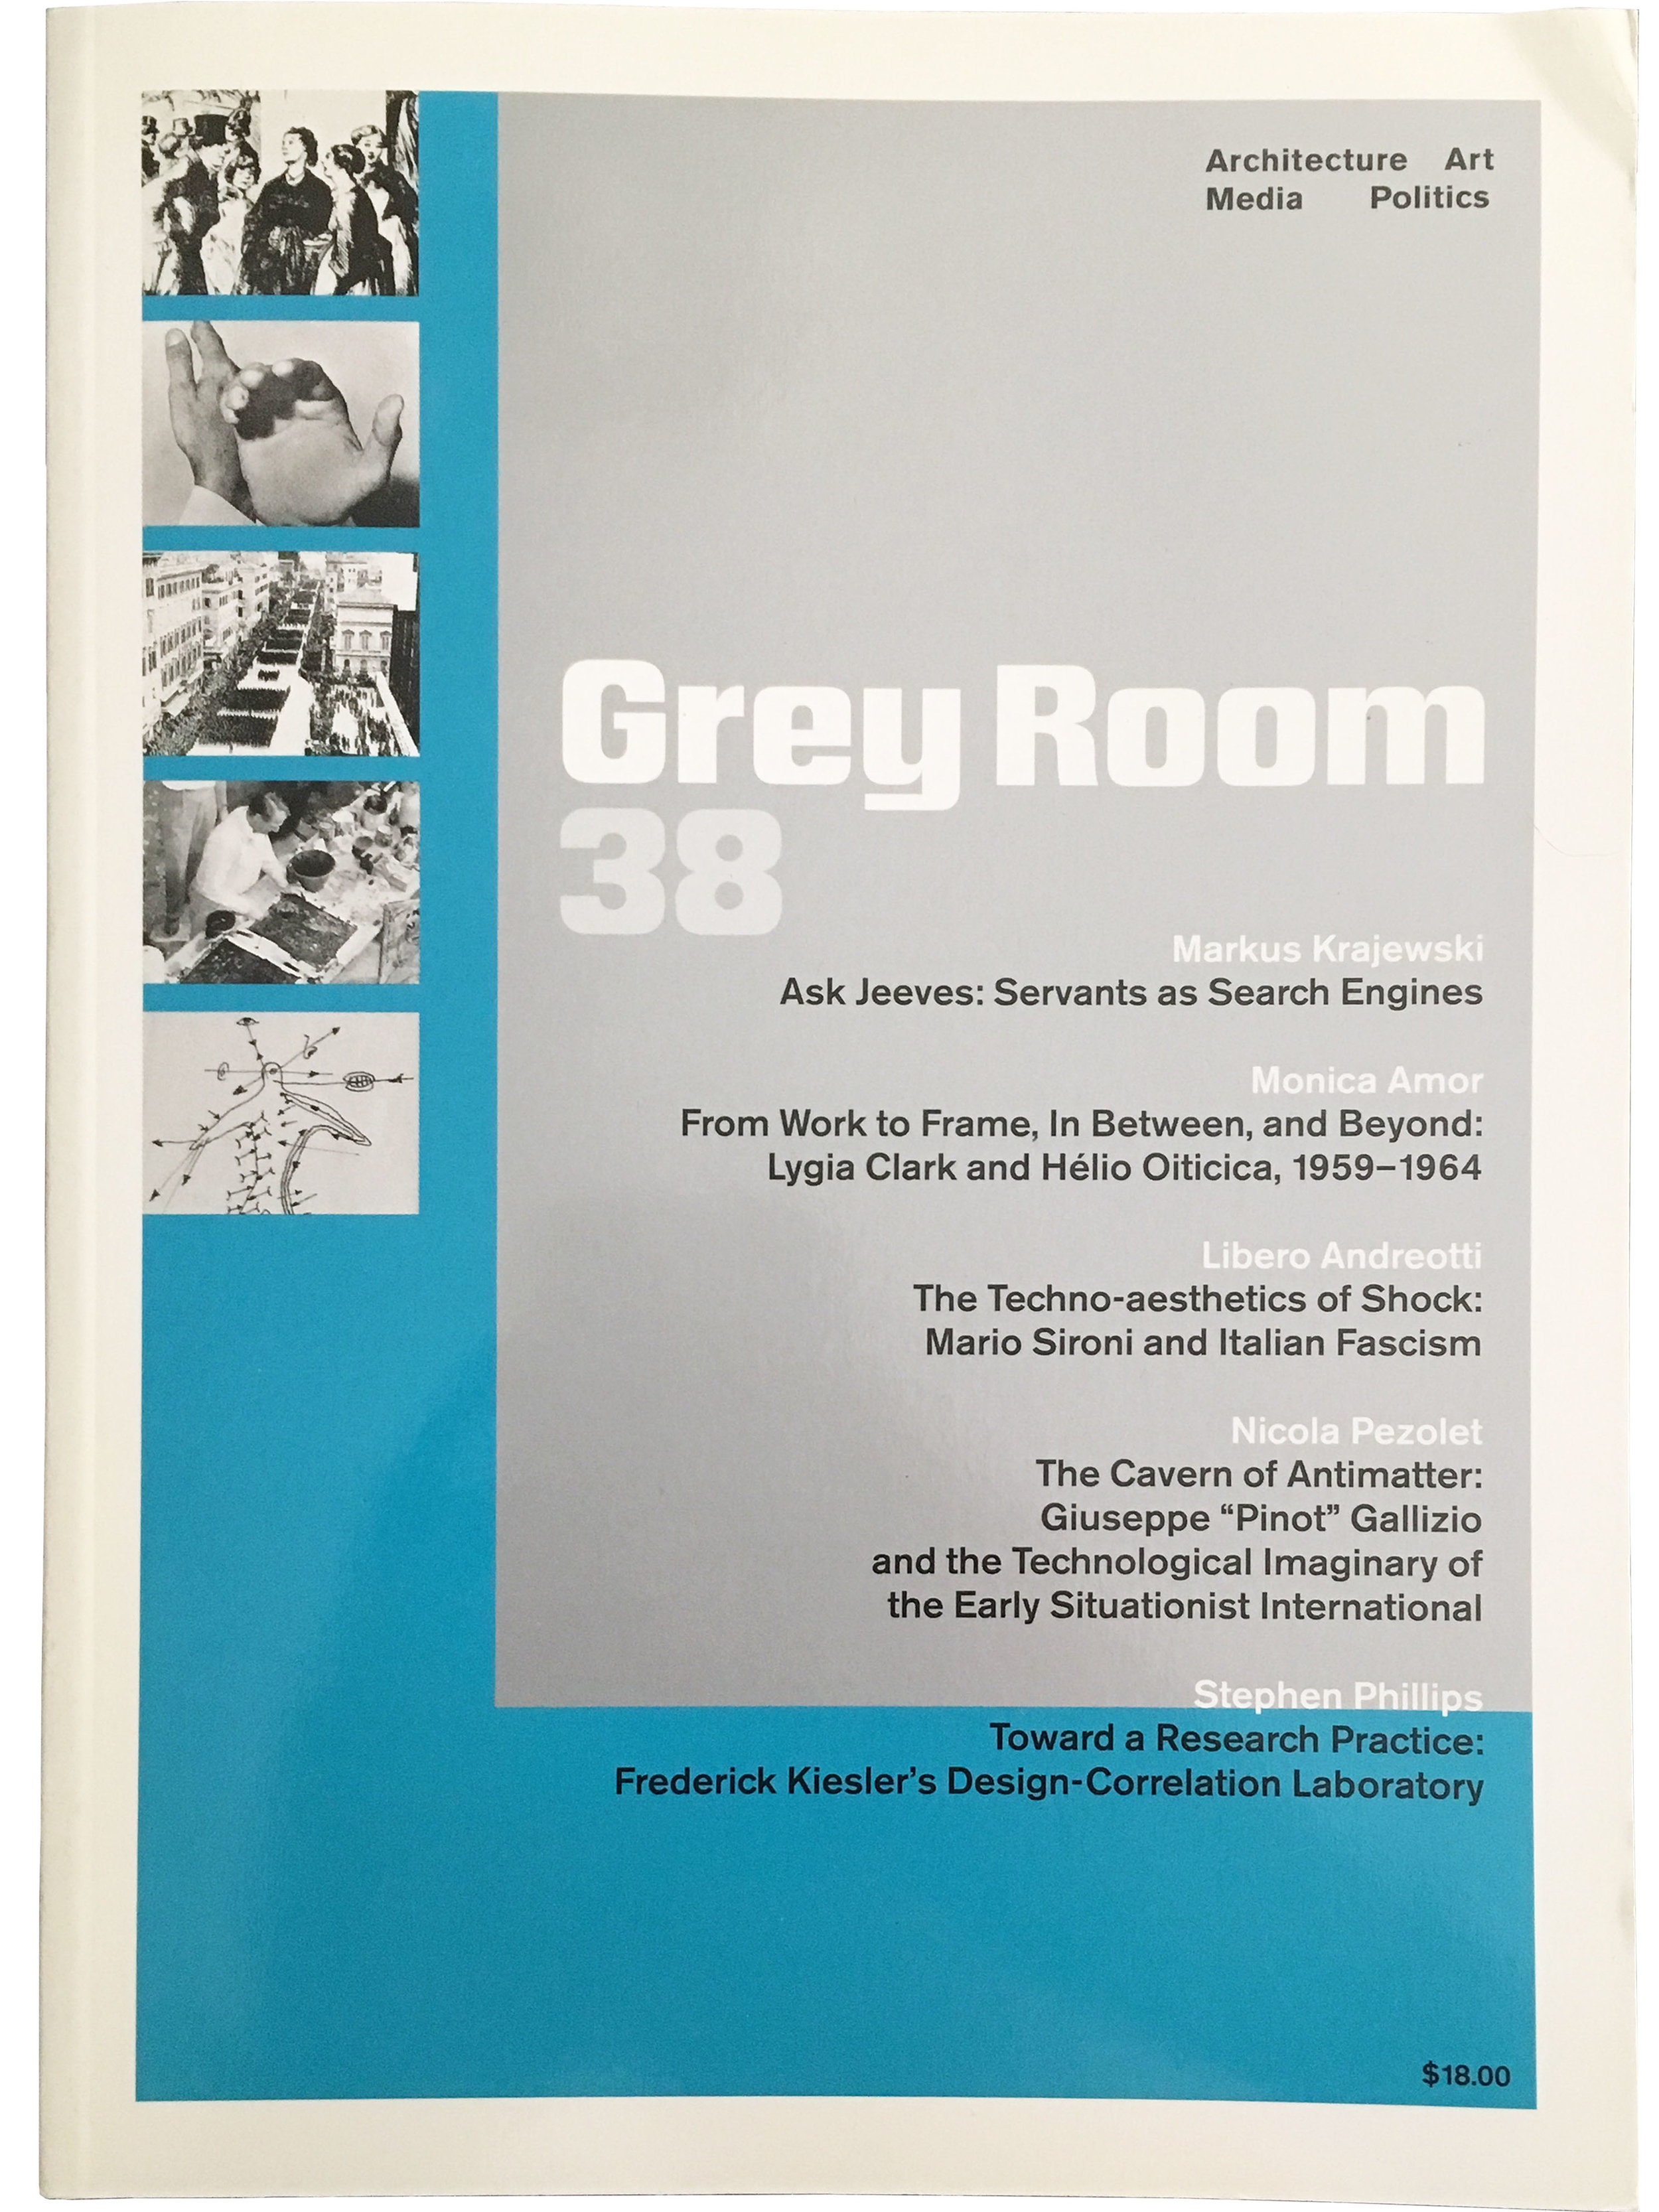 """""""Toward a Research Practice: Frederick Kiesler's Design Correlation Laboratory,""""   Grey Room 38 (MIT Press, Winter 2010): 90-120. (Winner, Bruno Zevi Prize, Special Mention, 2011). Research Practice Symposium: Proceedings, edited by Stephen Phillips (AeDPress, 2009).    download pdf"""